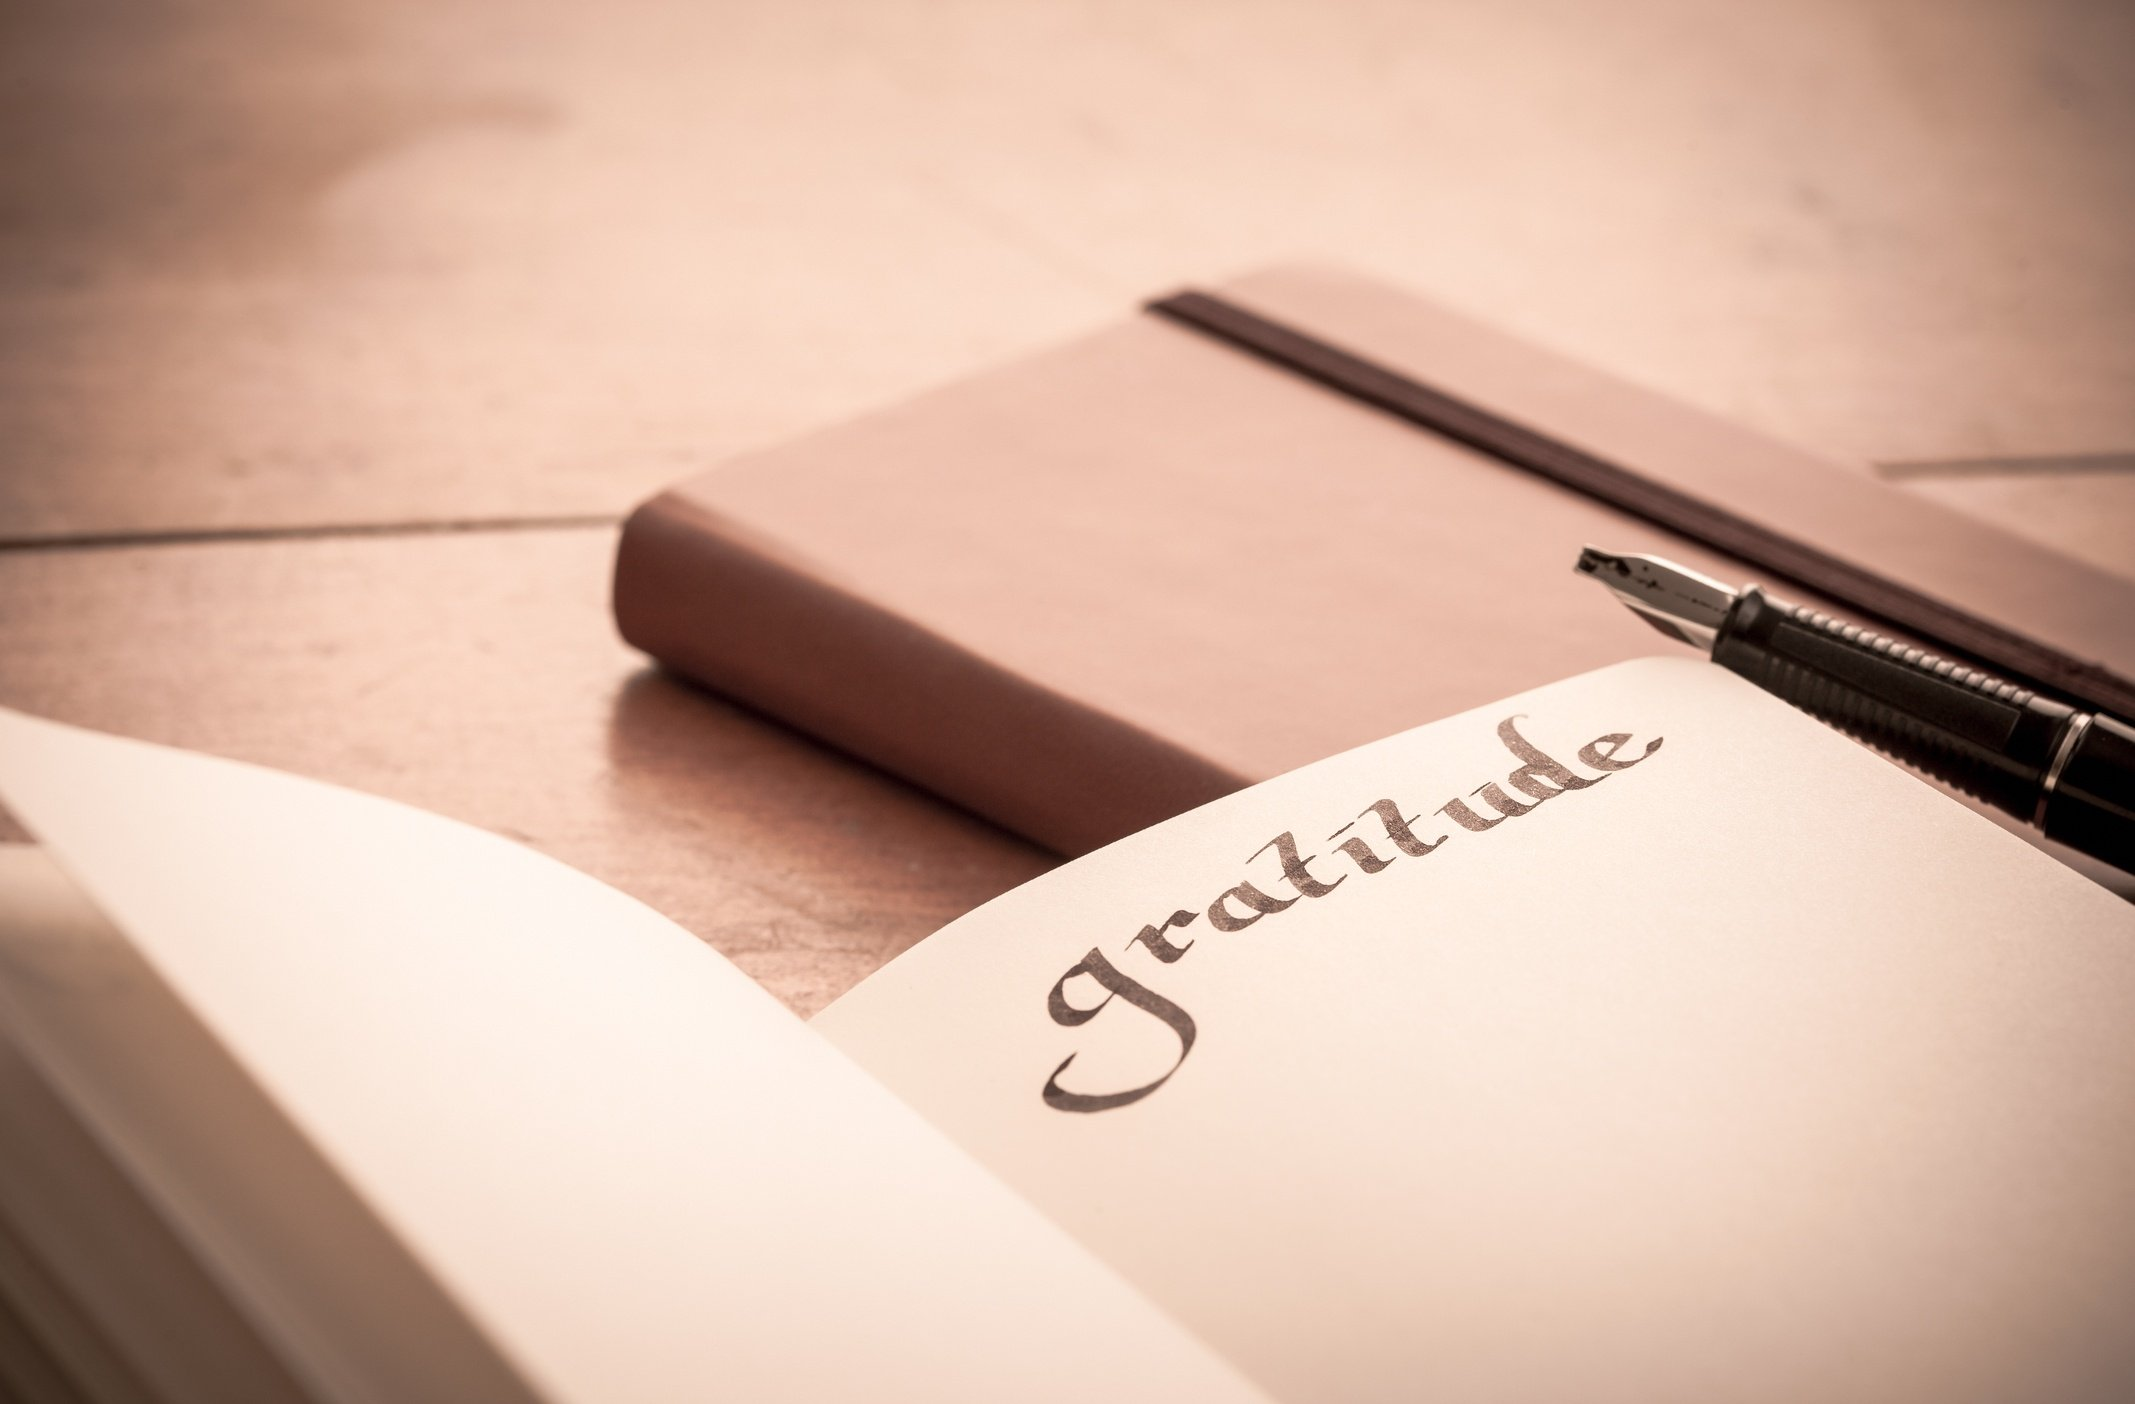 A gratitude journal is a great way to build more positivity